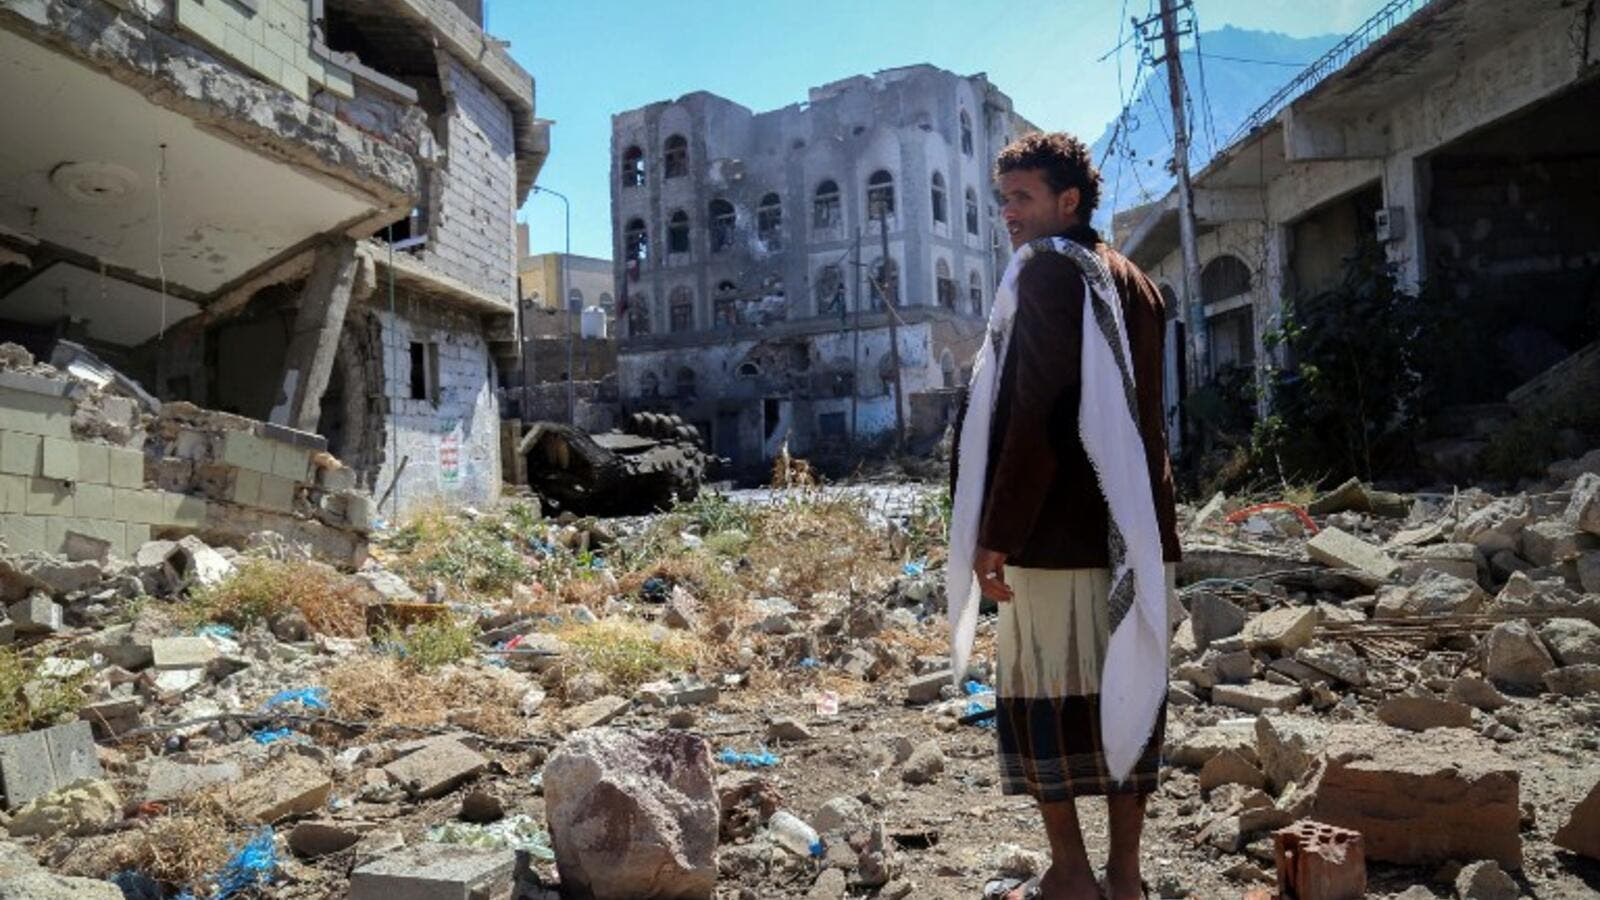 A Yemeni man inspects the damage on a street following clashes between pro-government militants and Shia Houthi rebels on November 22, 2016 in the country's third-city Taiz. (AFP/Ahmad al-Basha)